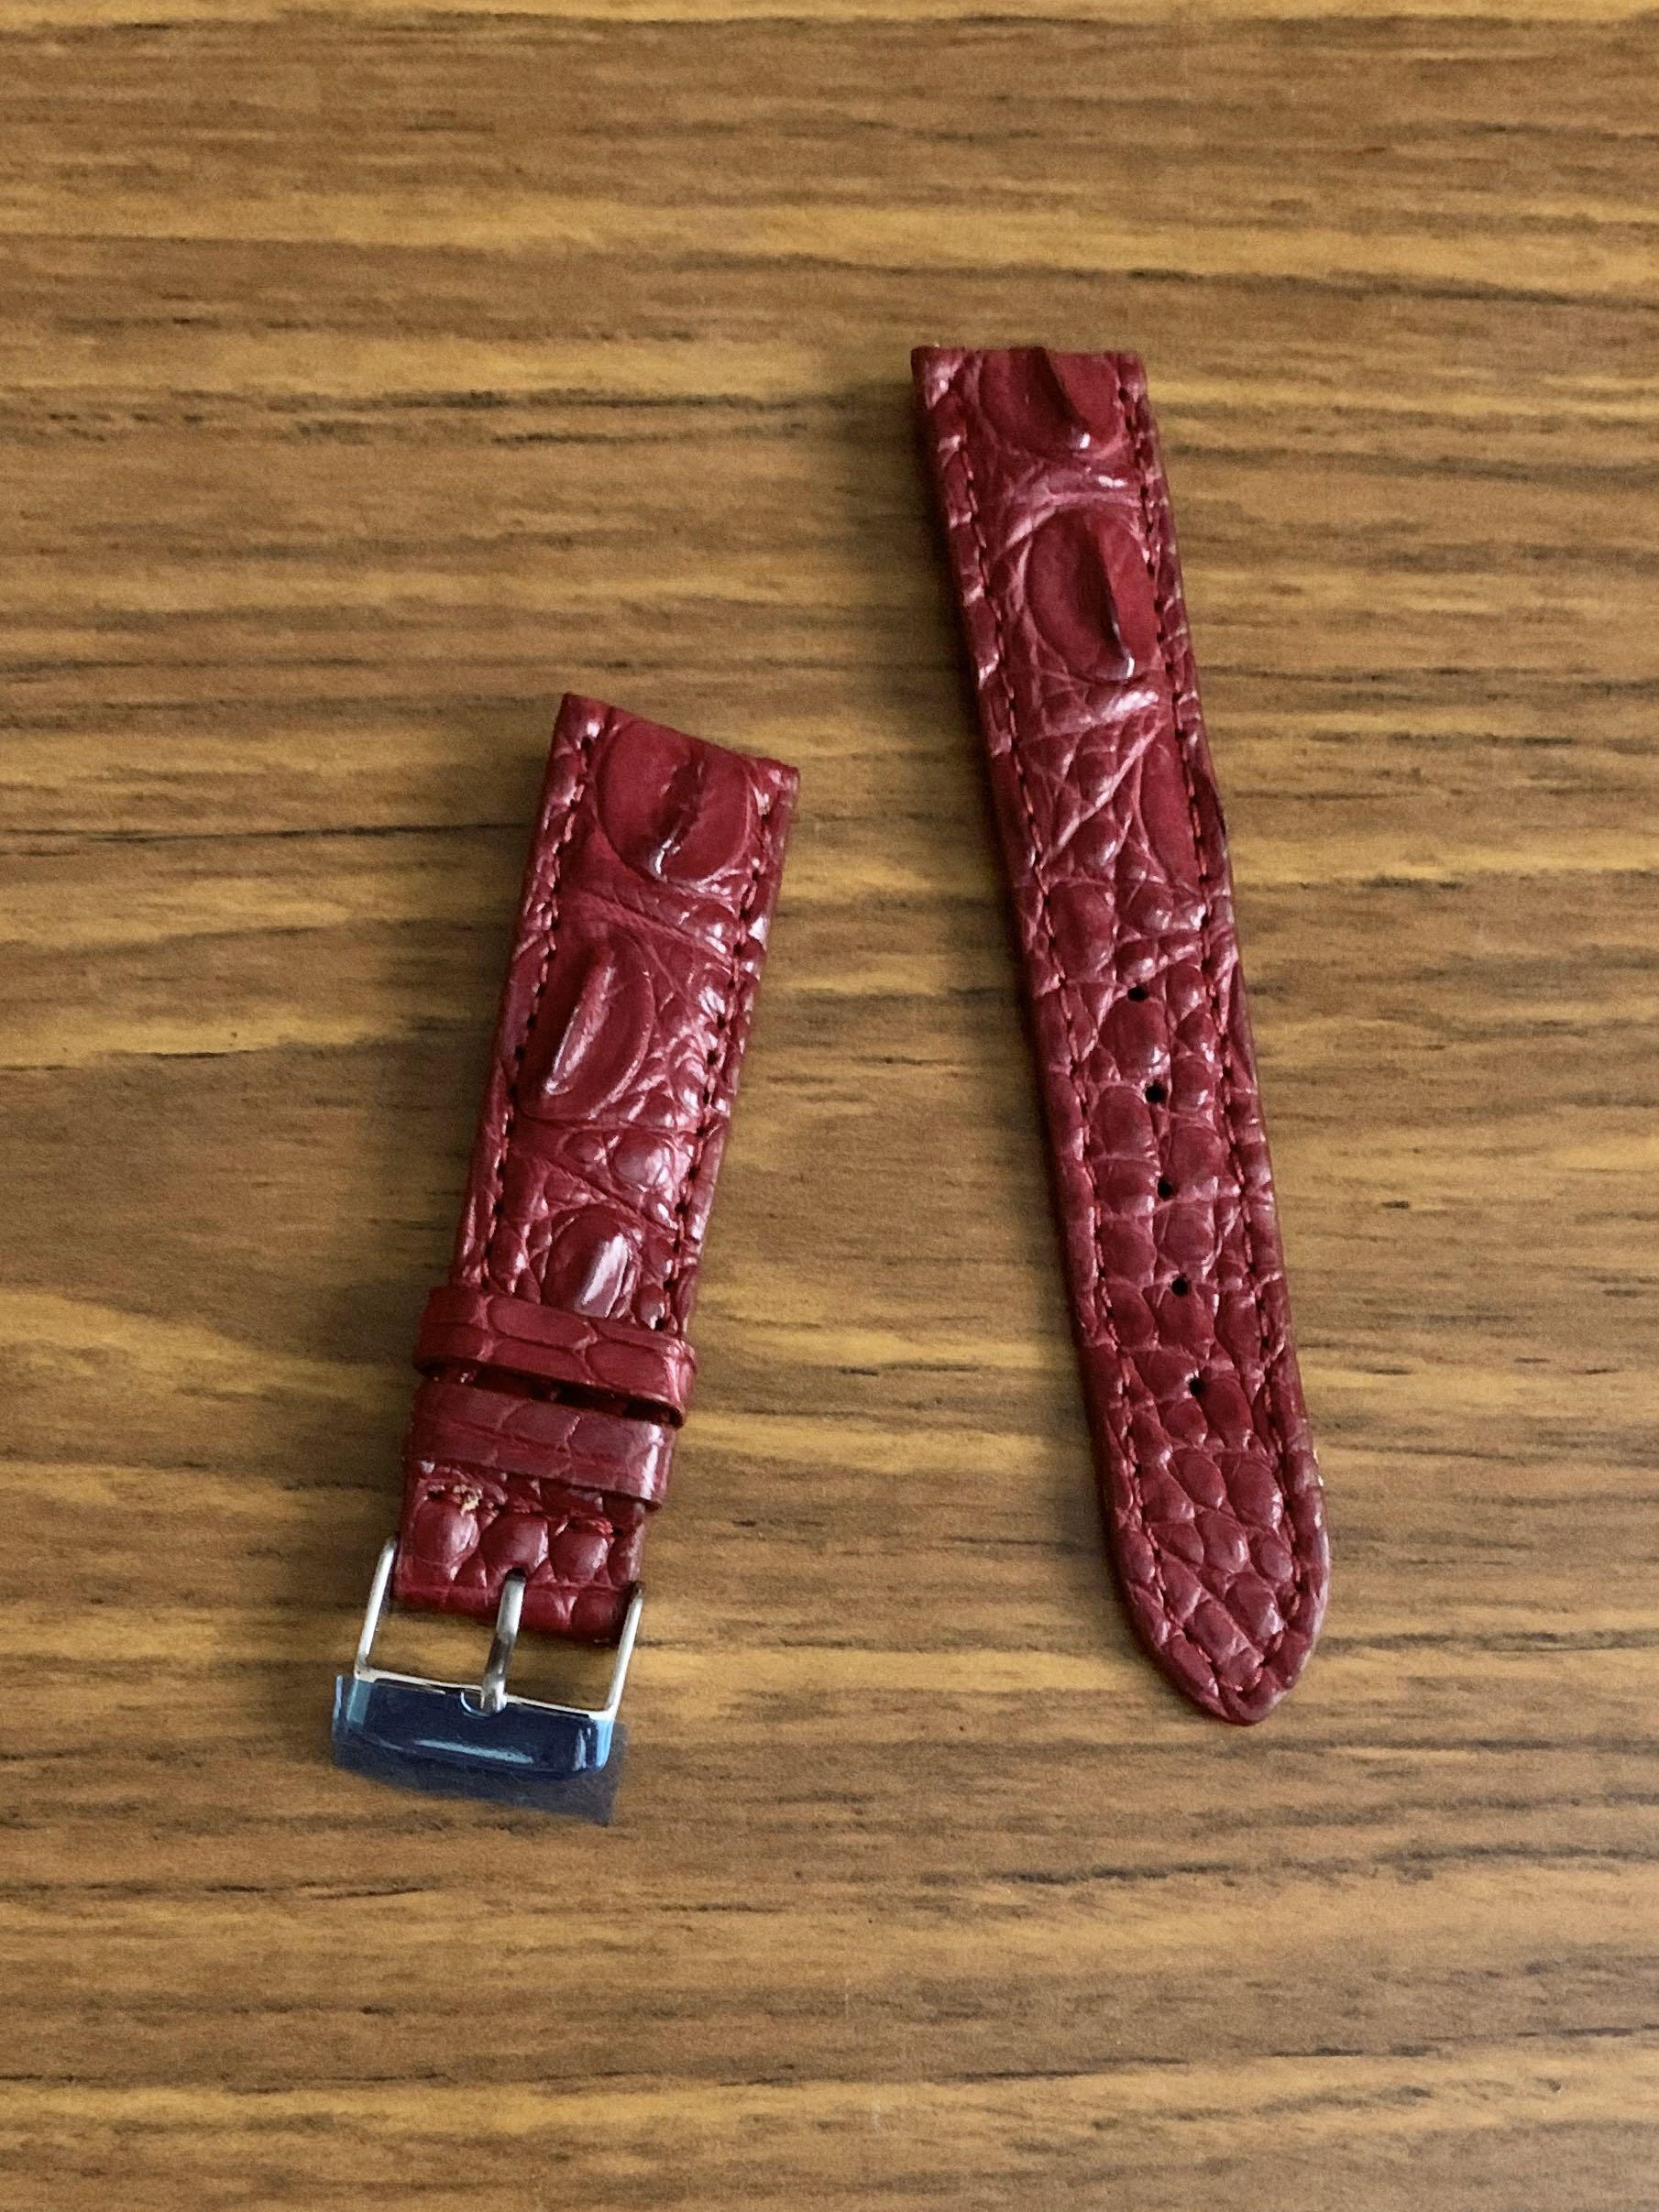 """[DISCOUNTED] 20mm/18mm Authentic """"Hornback-croc belly edge"""" Classy Burgundy Brown Crocodile 🐊 Alligator Watch Strap  (full of character, last piece in burgundy!!  -once sold no more😊) Standard Length- L:120mm S:75mm"""